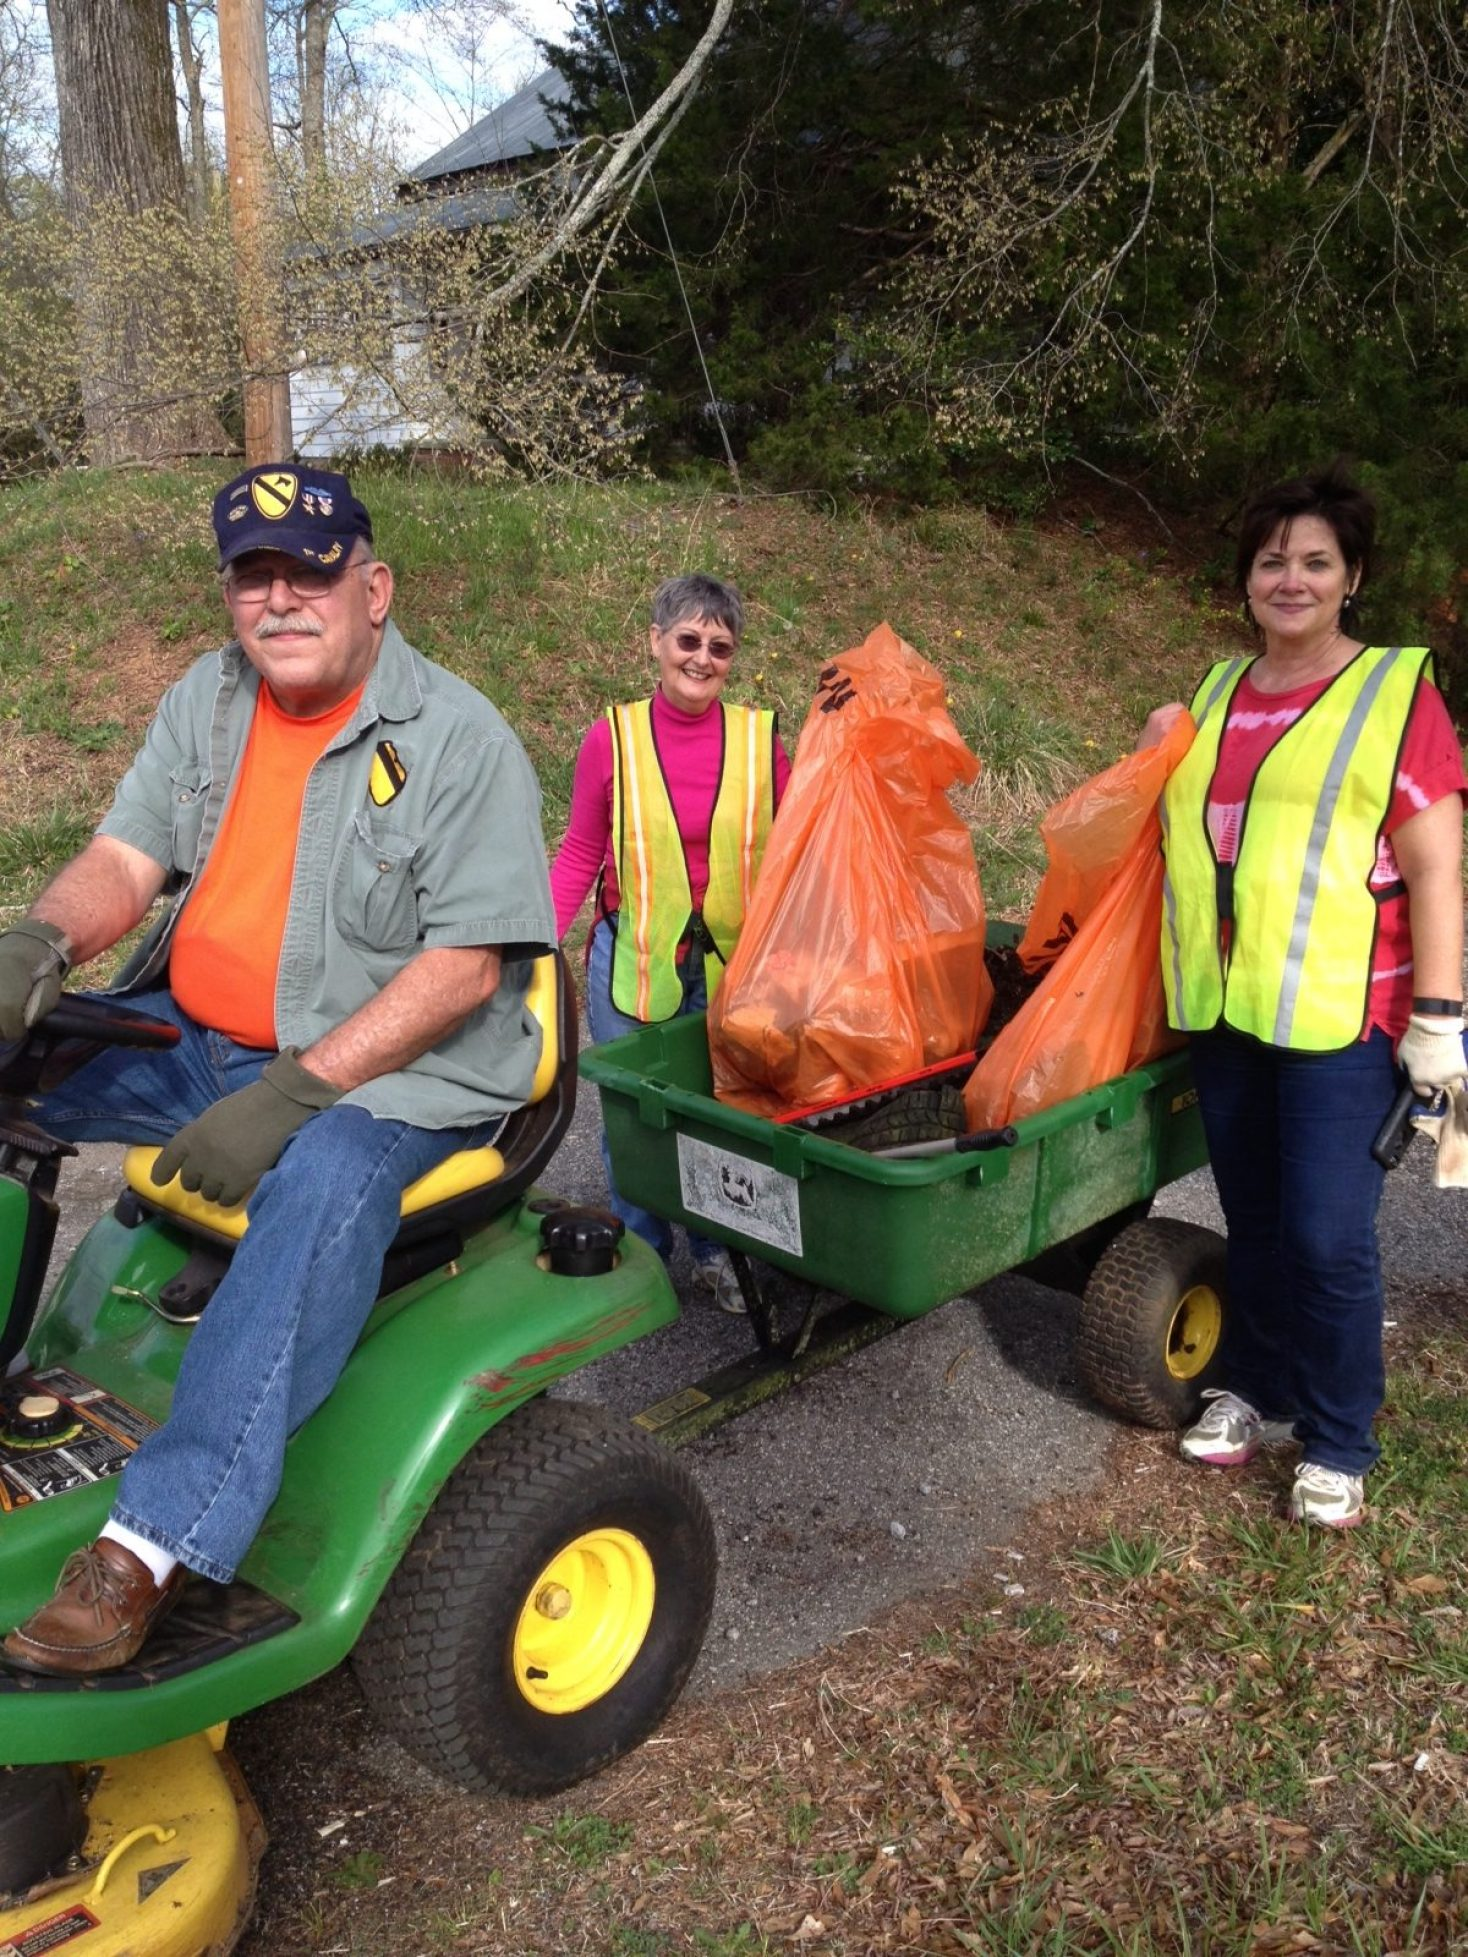 CANCELLED – Volunteers are needed for our Spring Town-Wide Cleanup